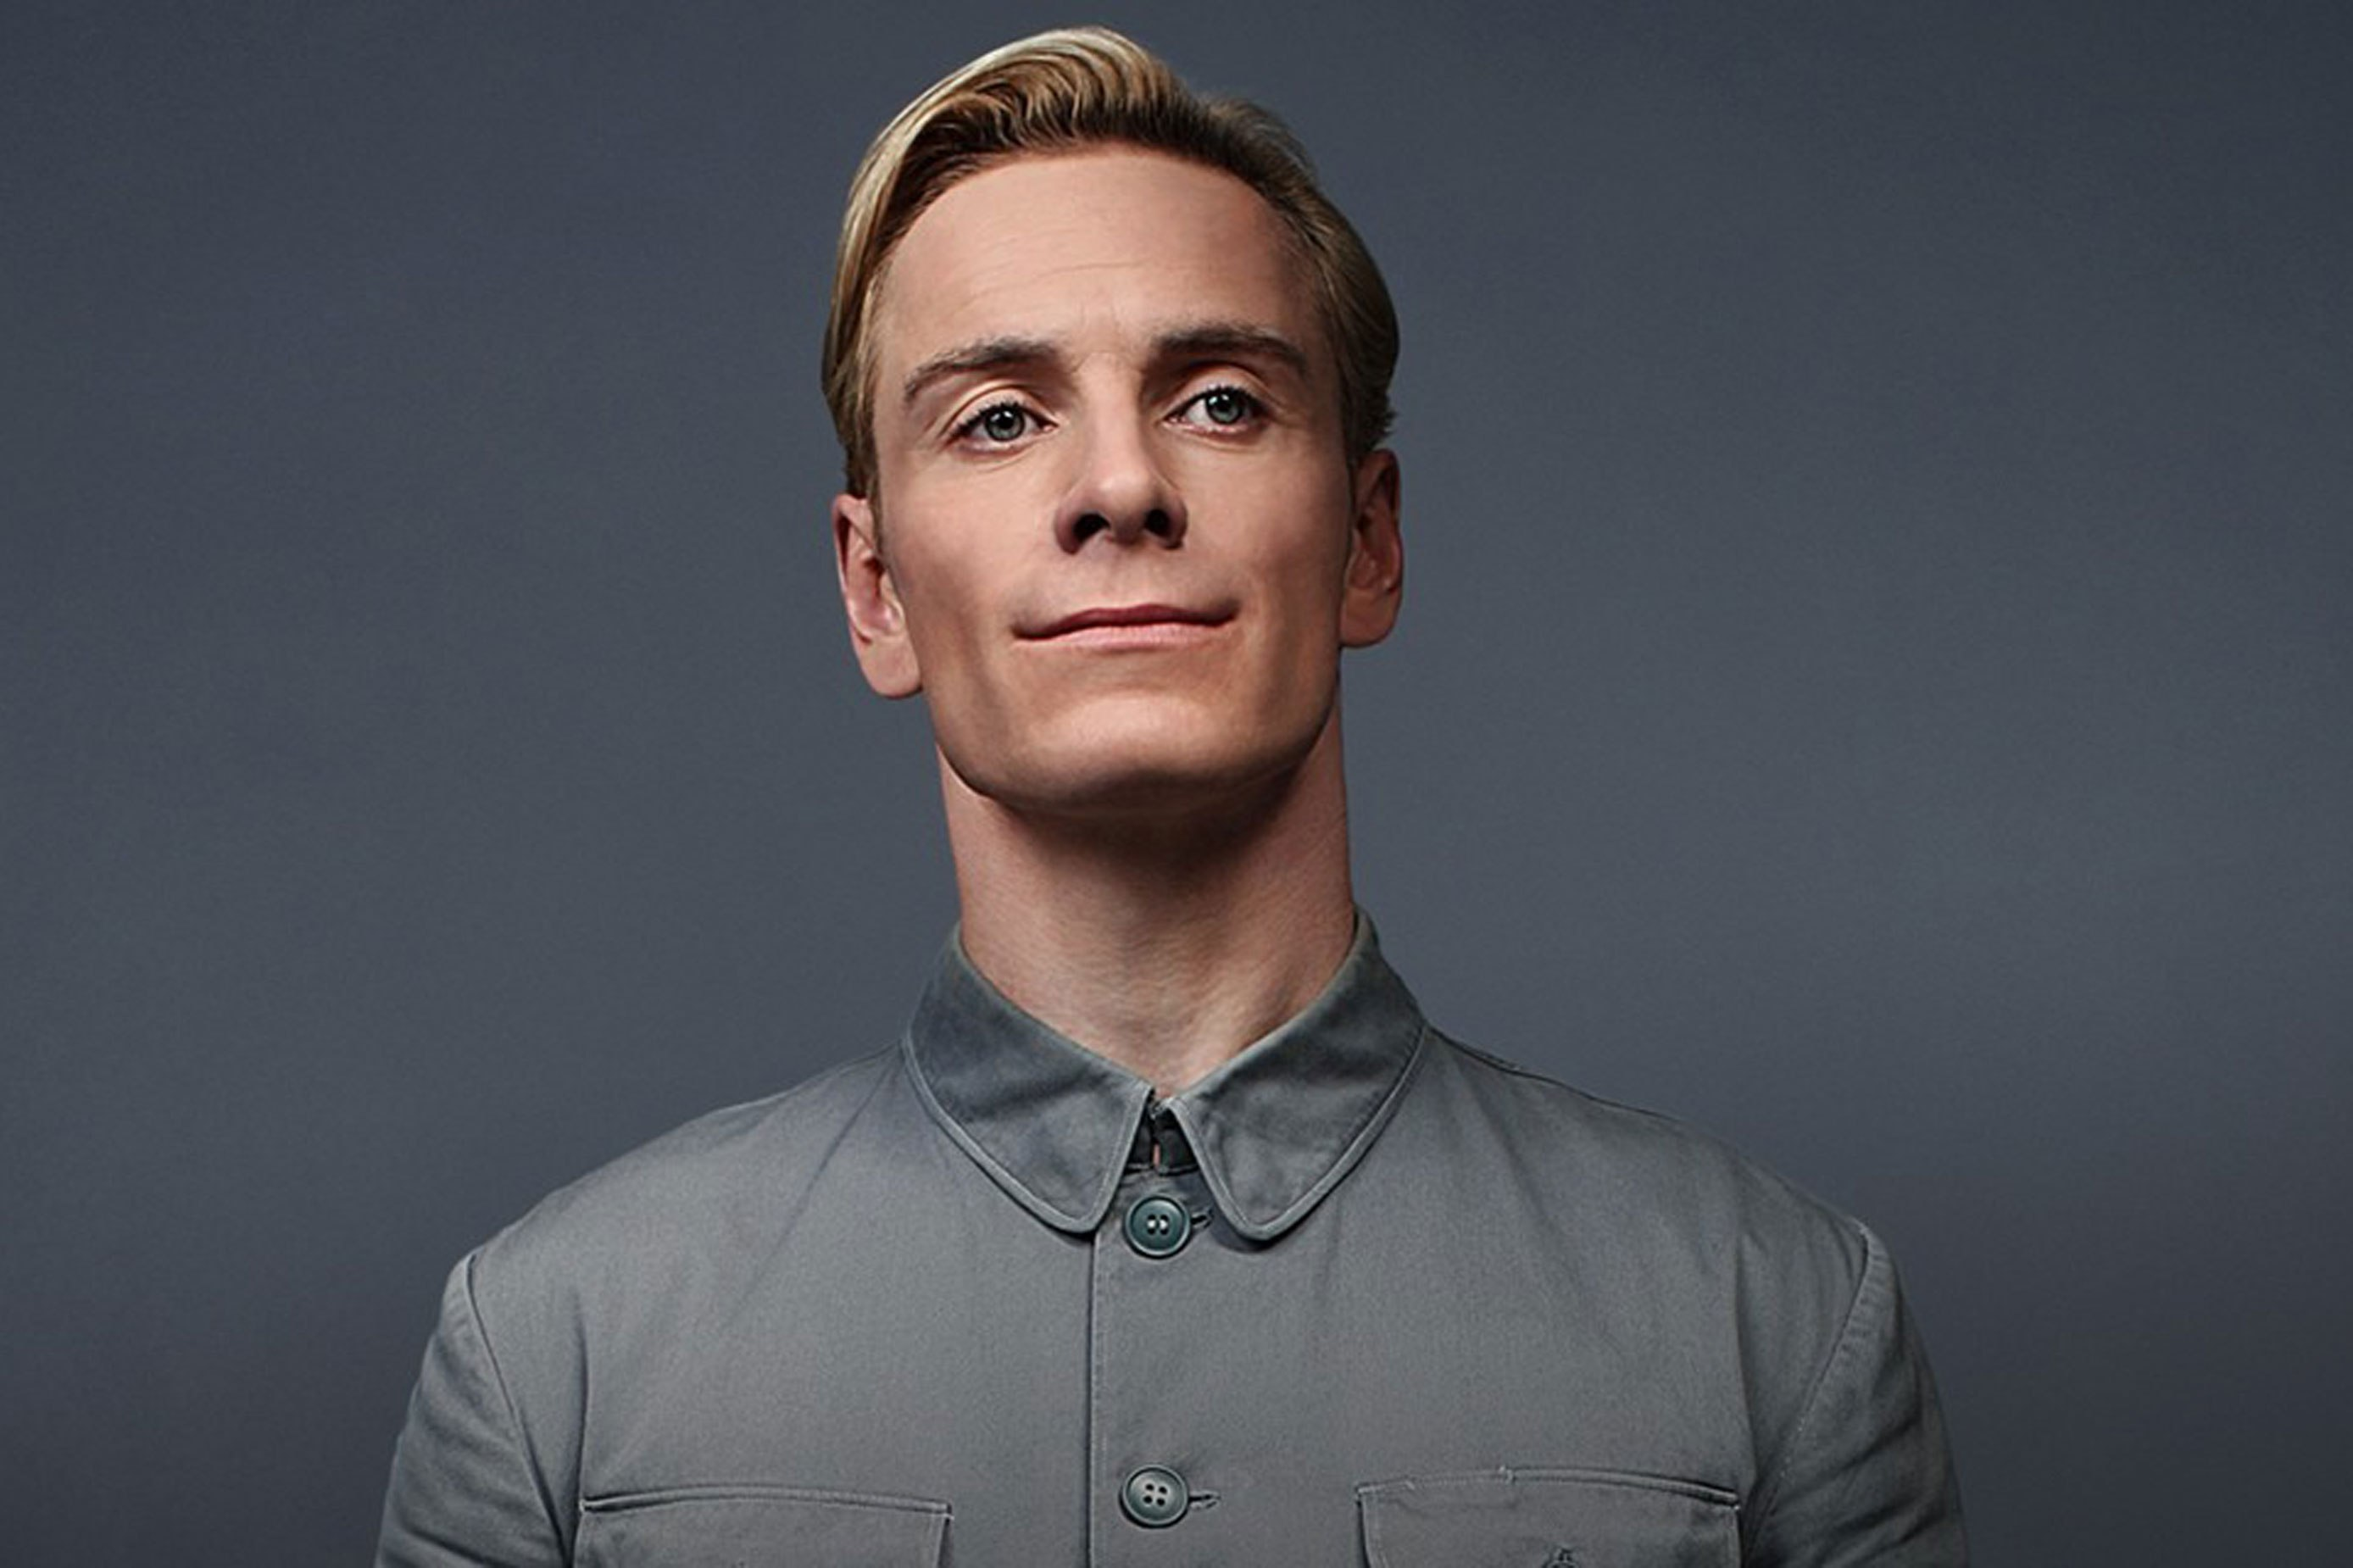 david - Ridley Scott Says Fassbender Will Be Seductive and Dangerous in Prometheus 2. Swoon.